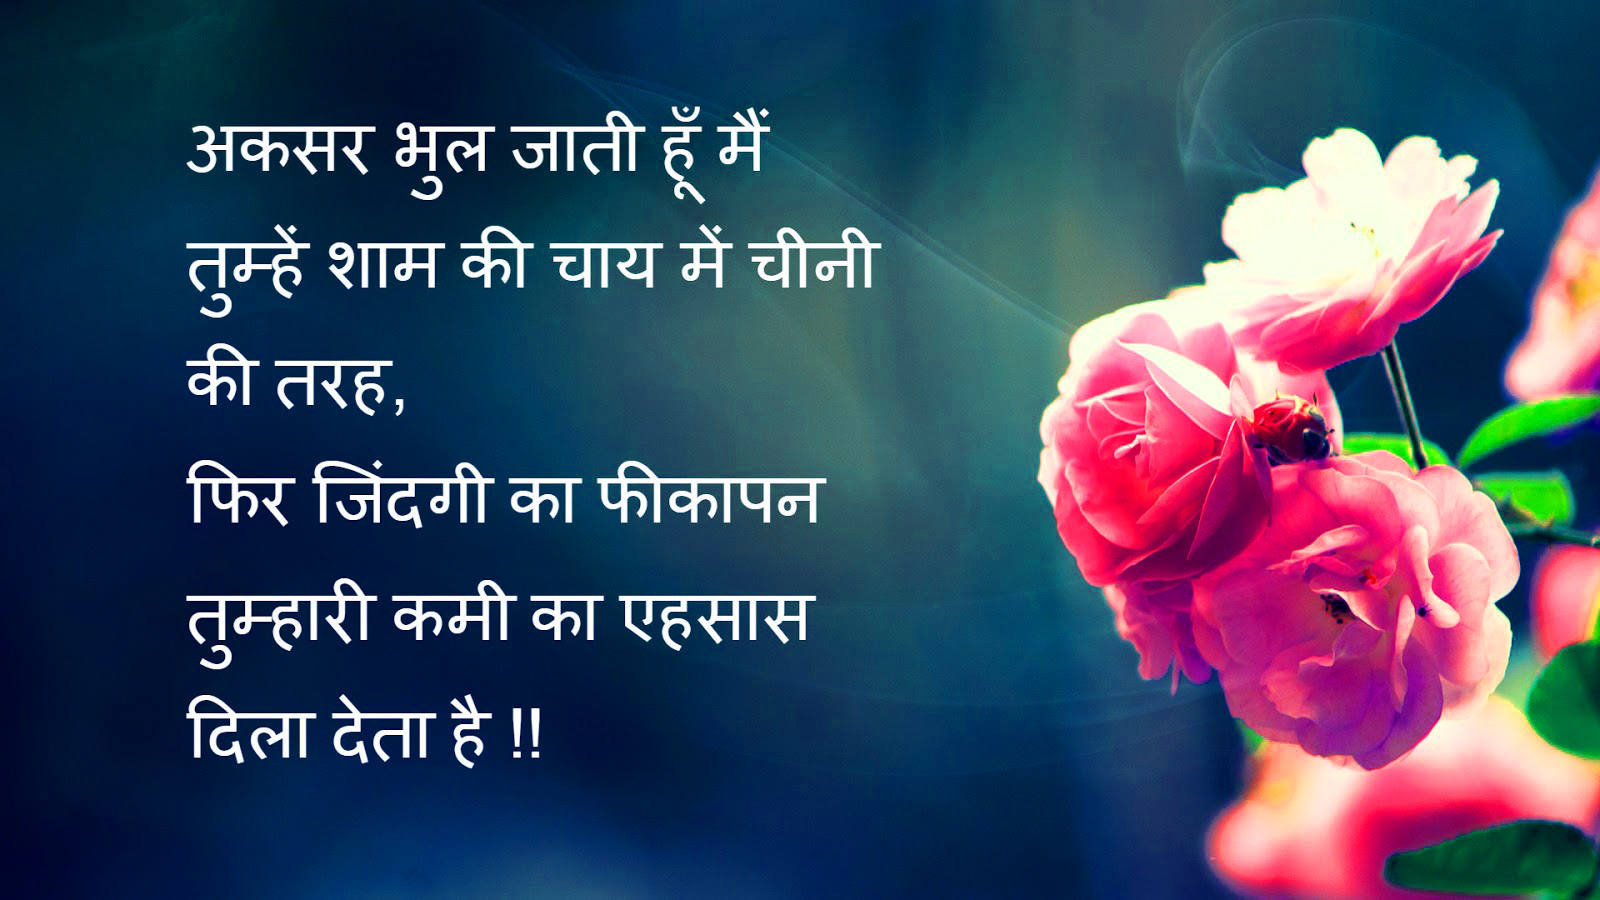 Sad Love Romantic Life Best Hindi Shayari Images Photo Download shayari (1)